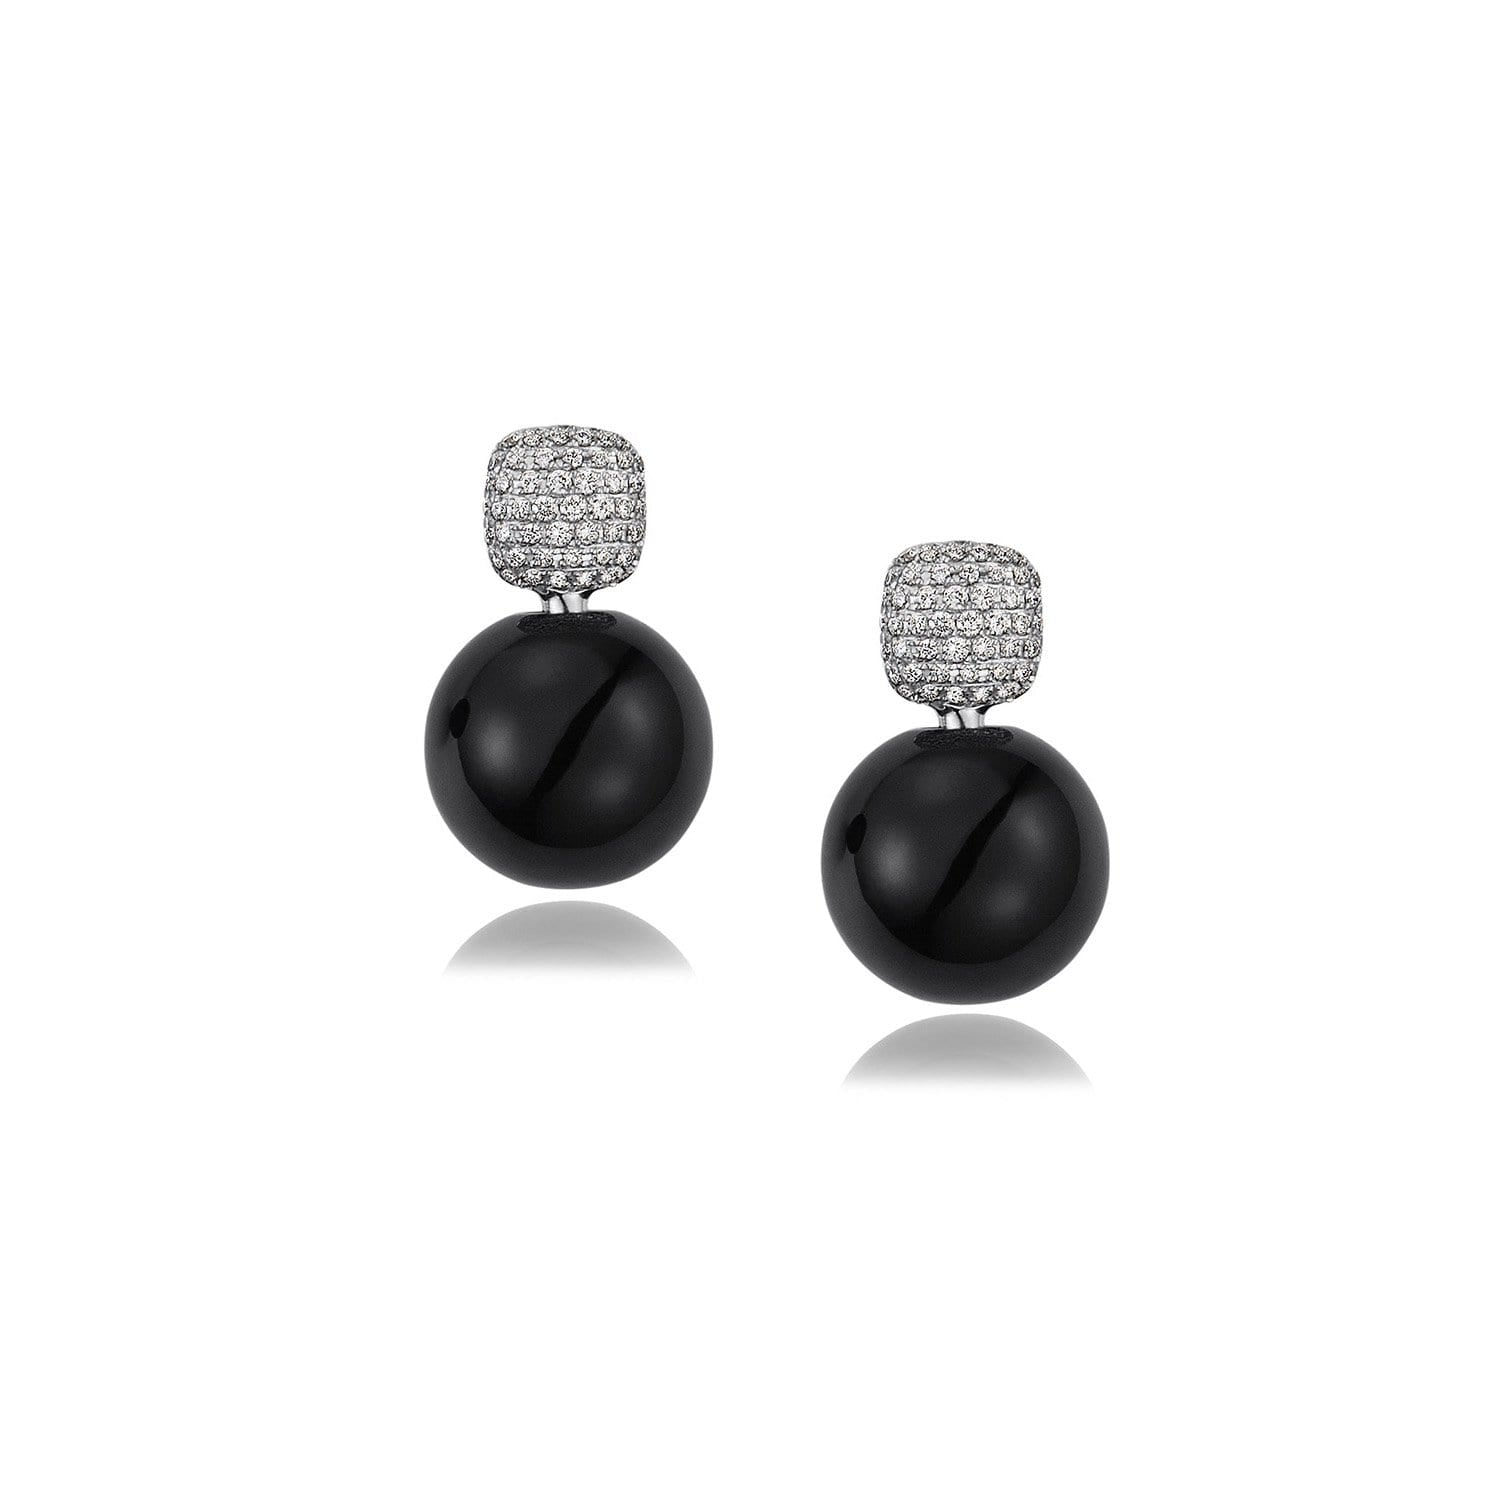 COMPOSA STONES Earrings - STENZHORN JEWELLERY